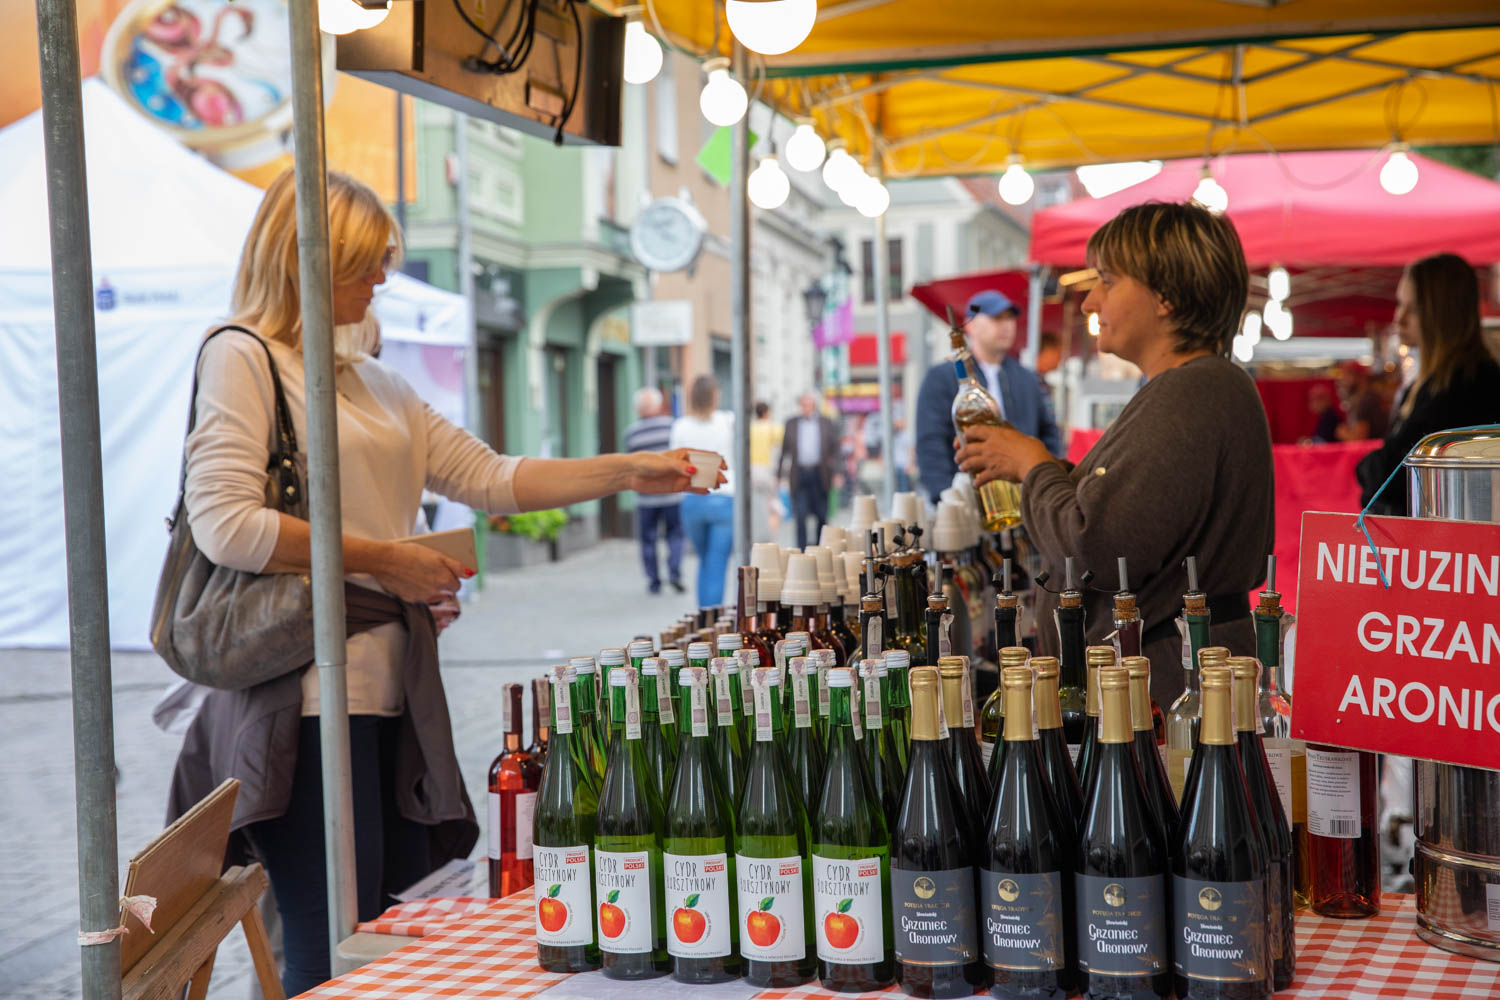 Woman tasting wine and cider at a small booth in the city center